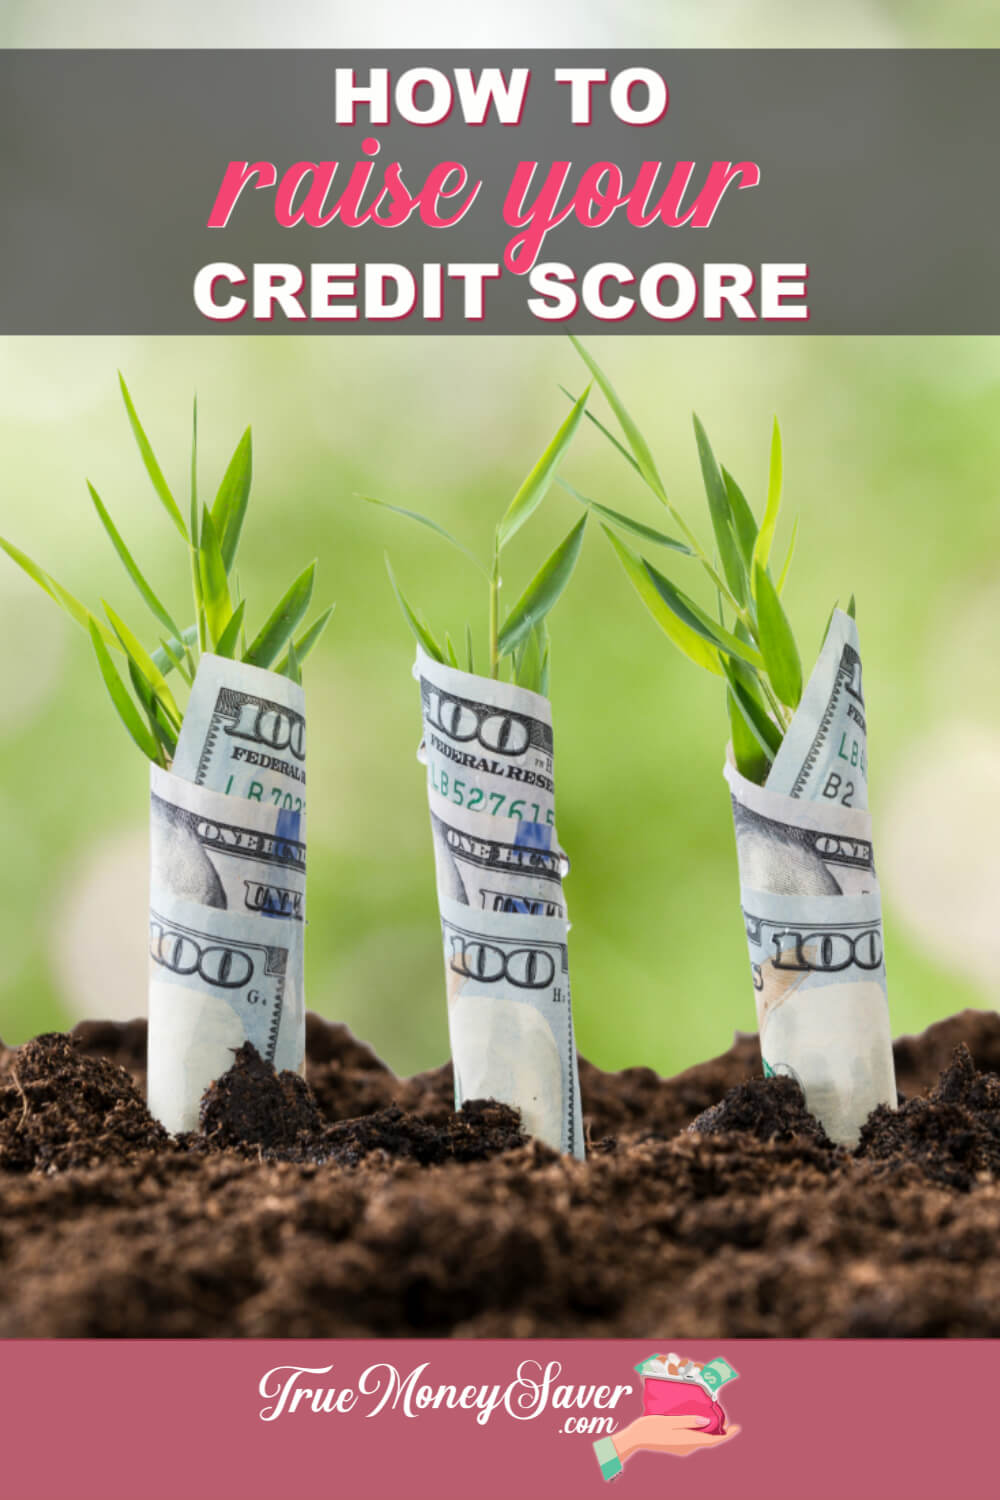 Is your credit score rating less than ideal? You can raise it with these easy steps. #trucouponing #debtfree #creditrepair #credit #financialfreedom